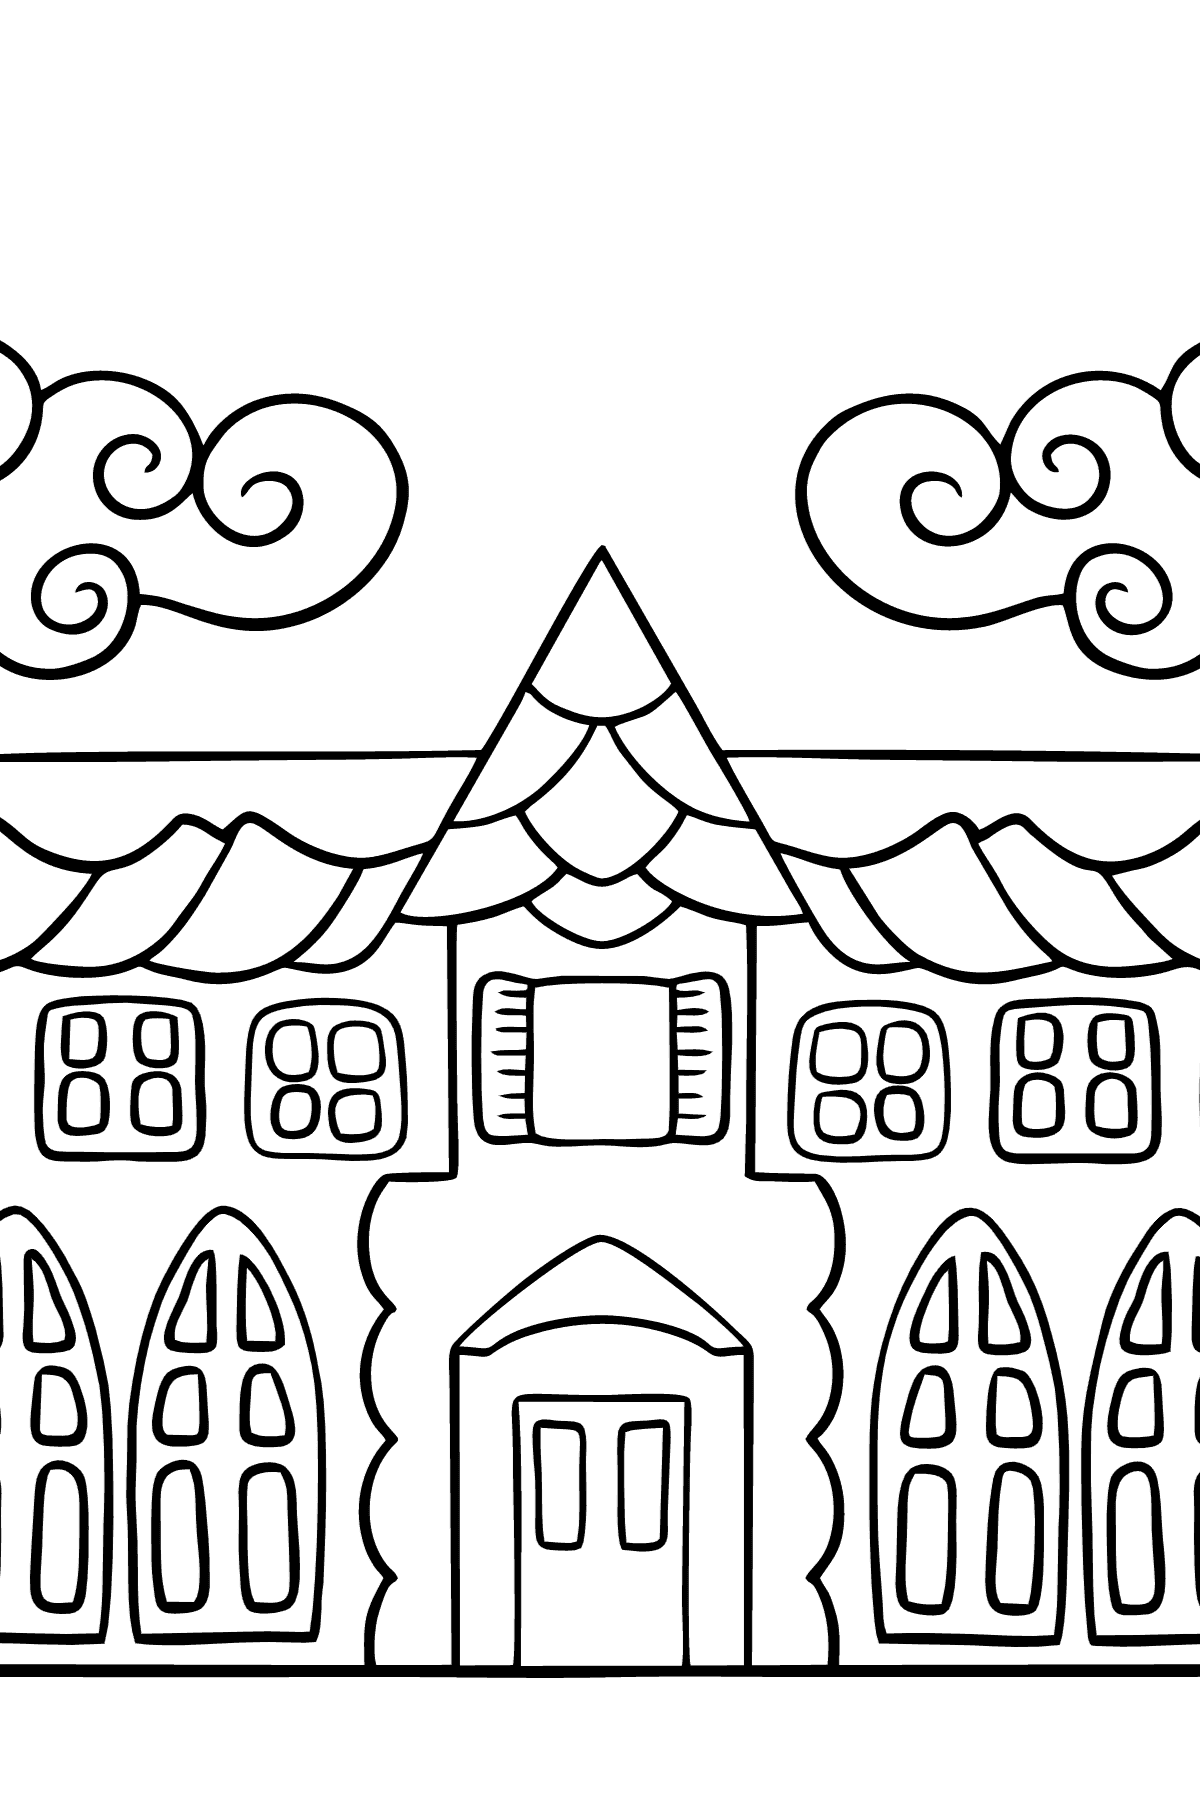 Complex Coloring Page - A House in an Enchanted Kingdom - Coloring Pages for Children